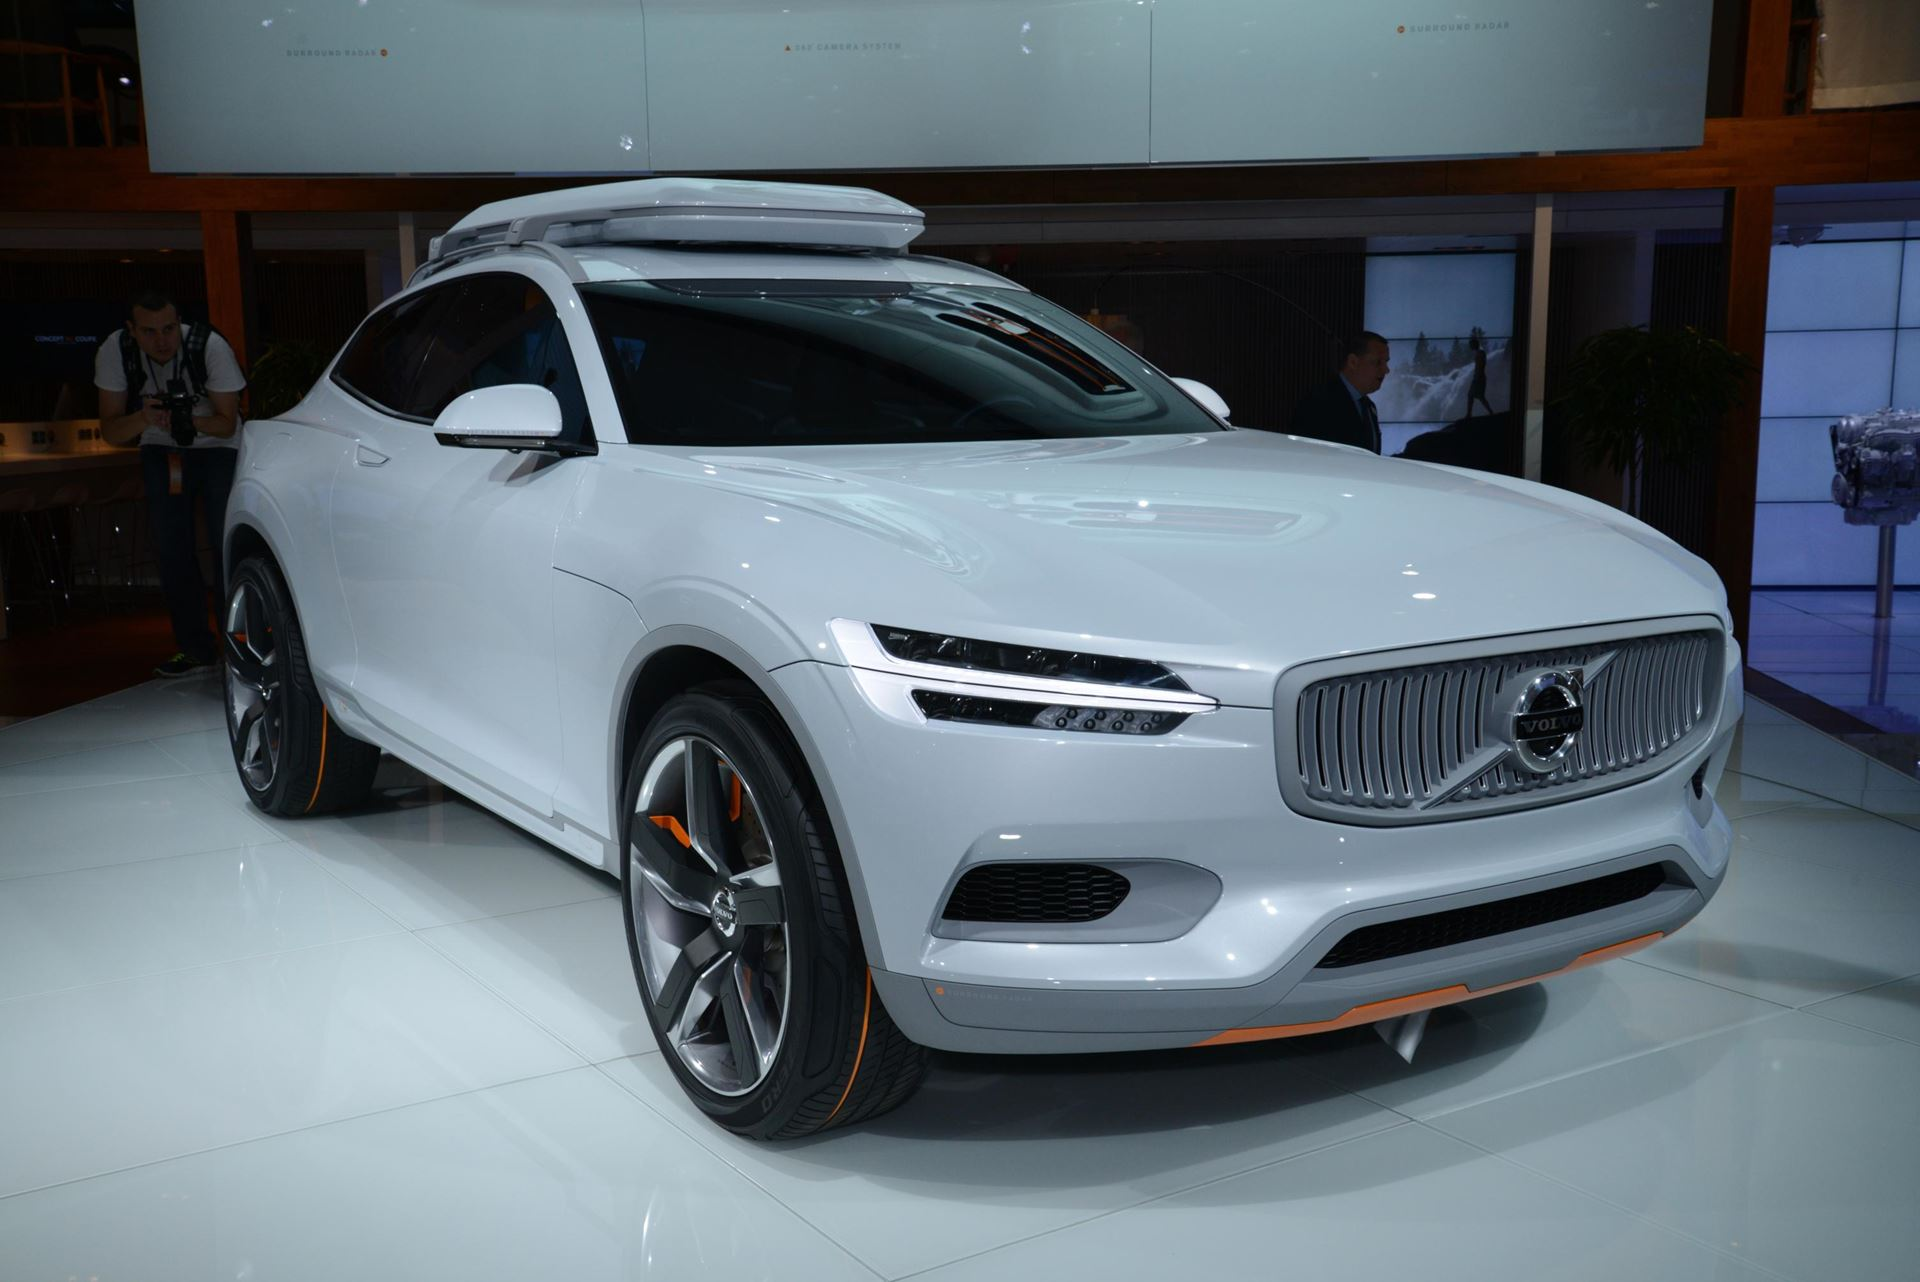 car volvo concept car naias 2014 technology tips. Black Bedroom Furniture Sets. Home Design Ideas